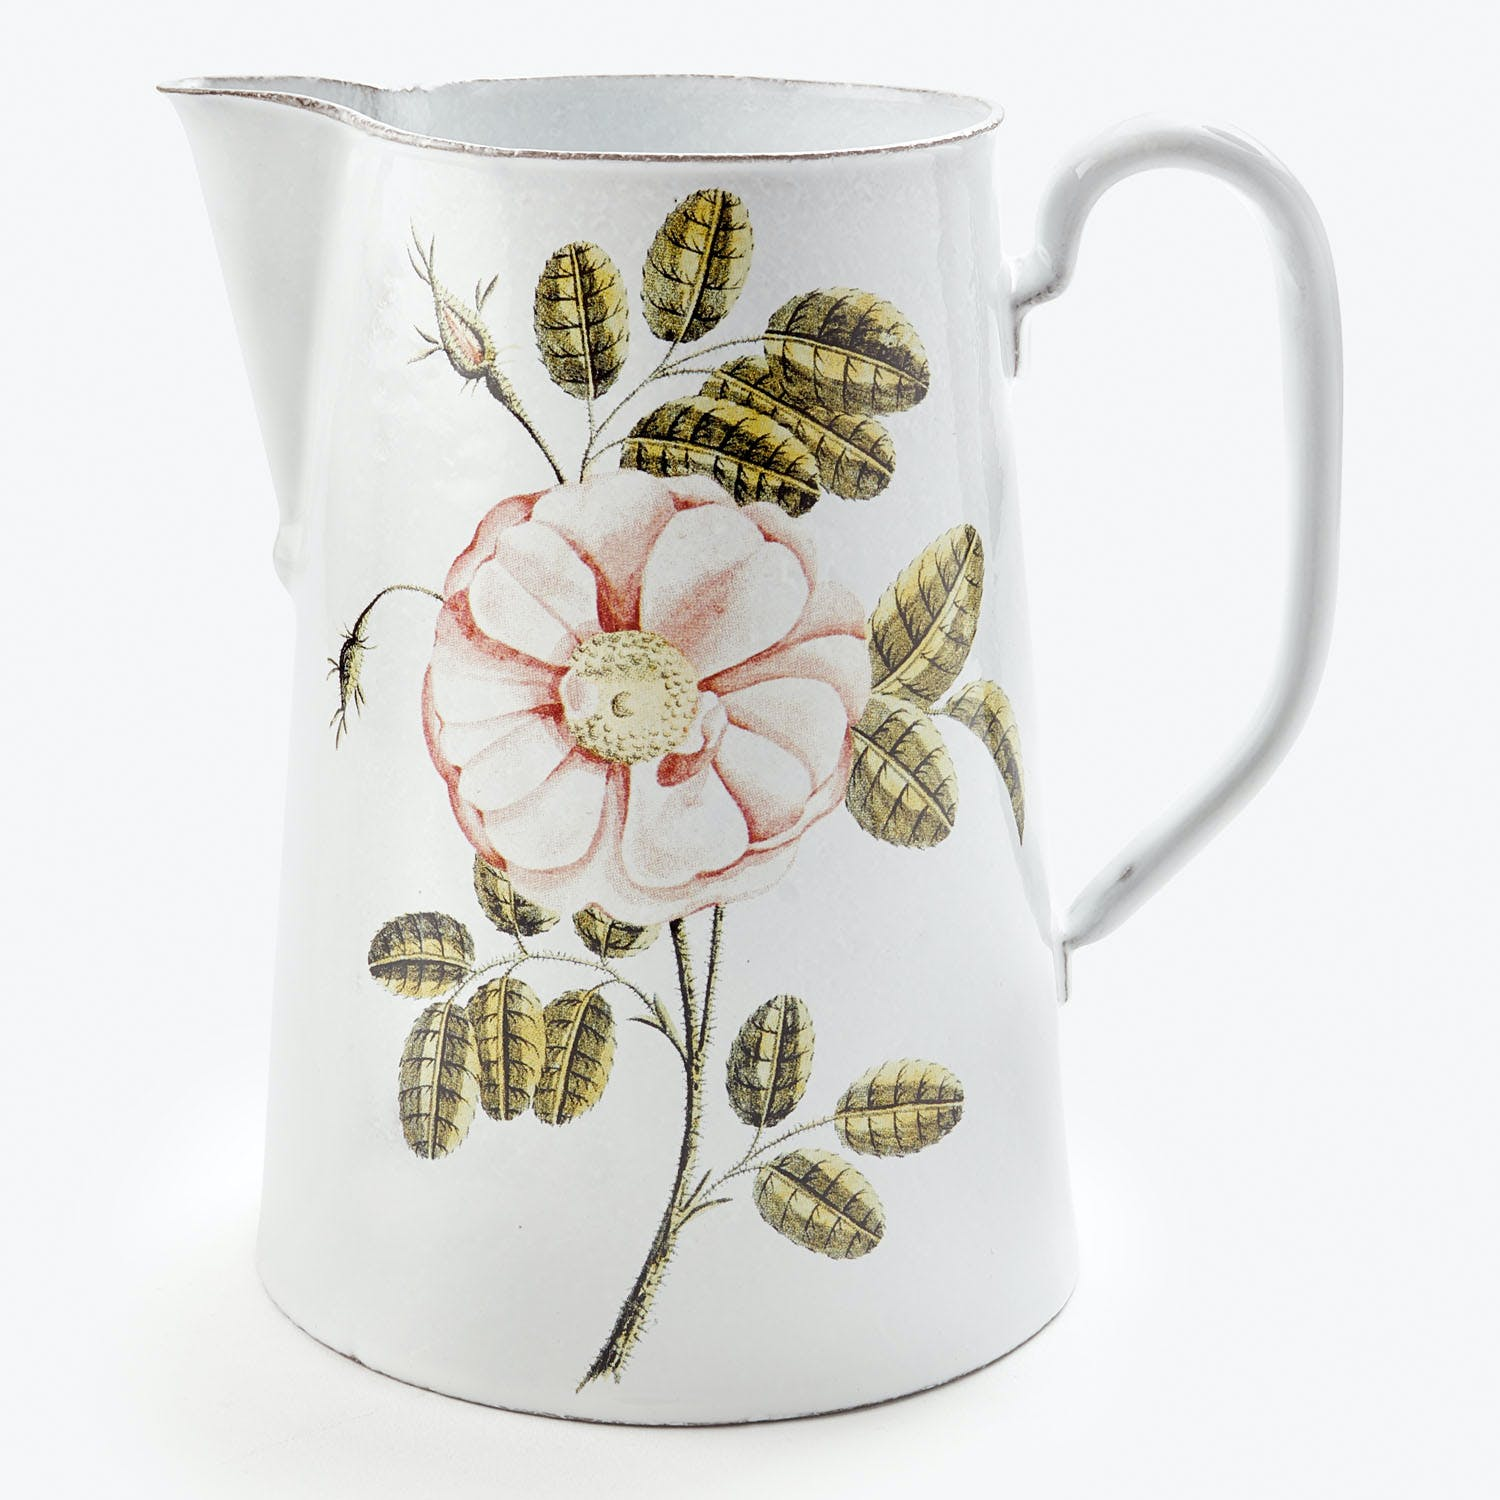 John Derian for Astier de Villatte Rose Pitcher